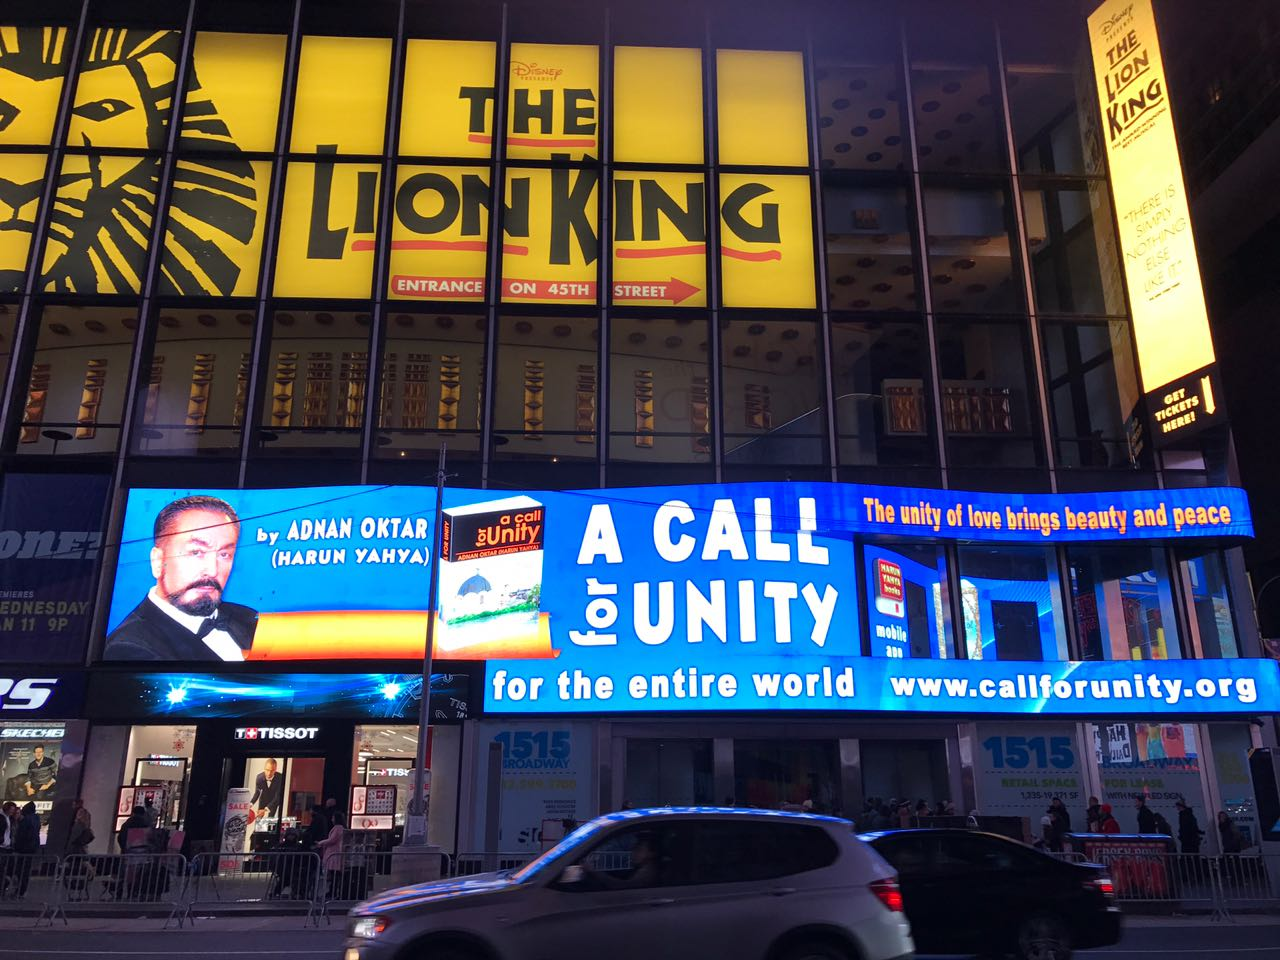 Adnan Oktar's message for 'A call for unity' at the Times Square in